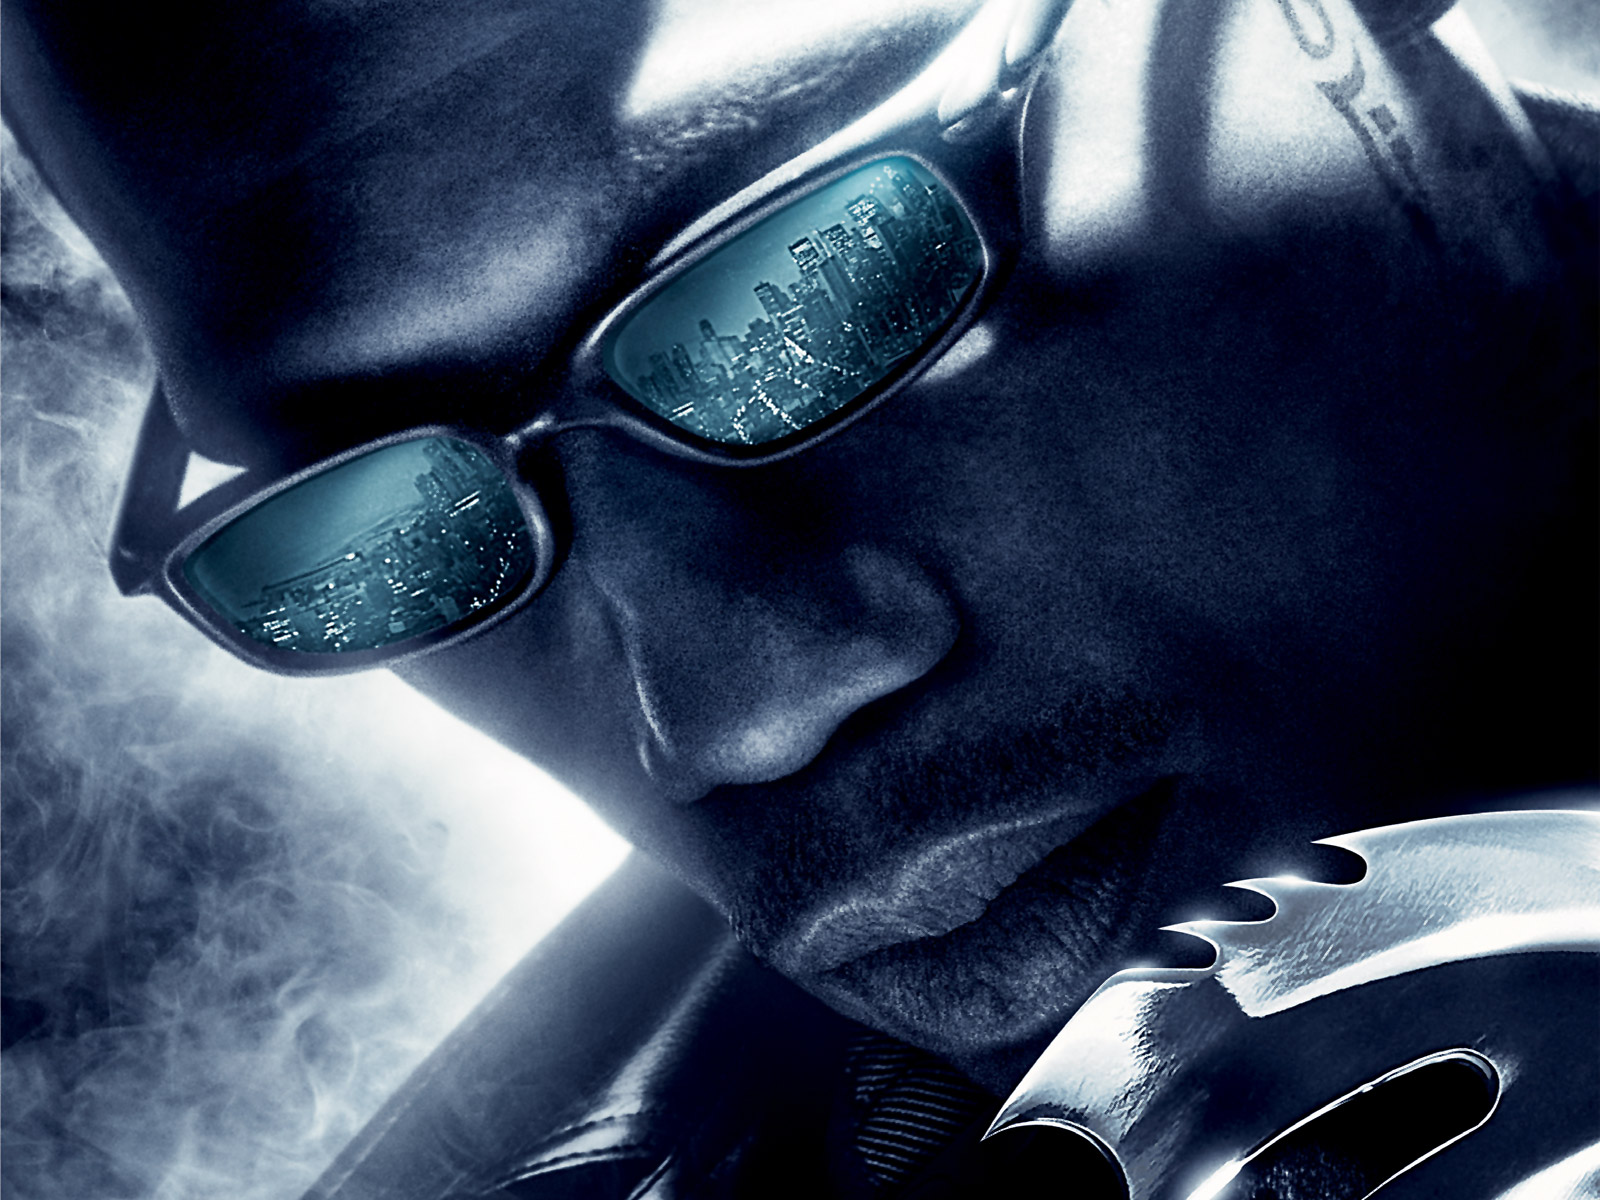 blade-trinity-warrior-wallpapers_1173_1600x1200